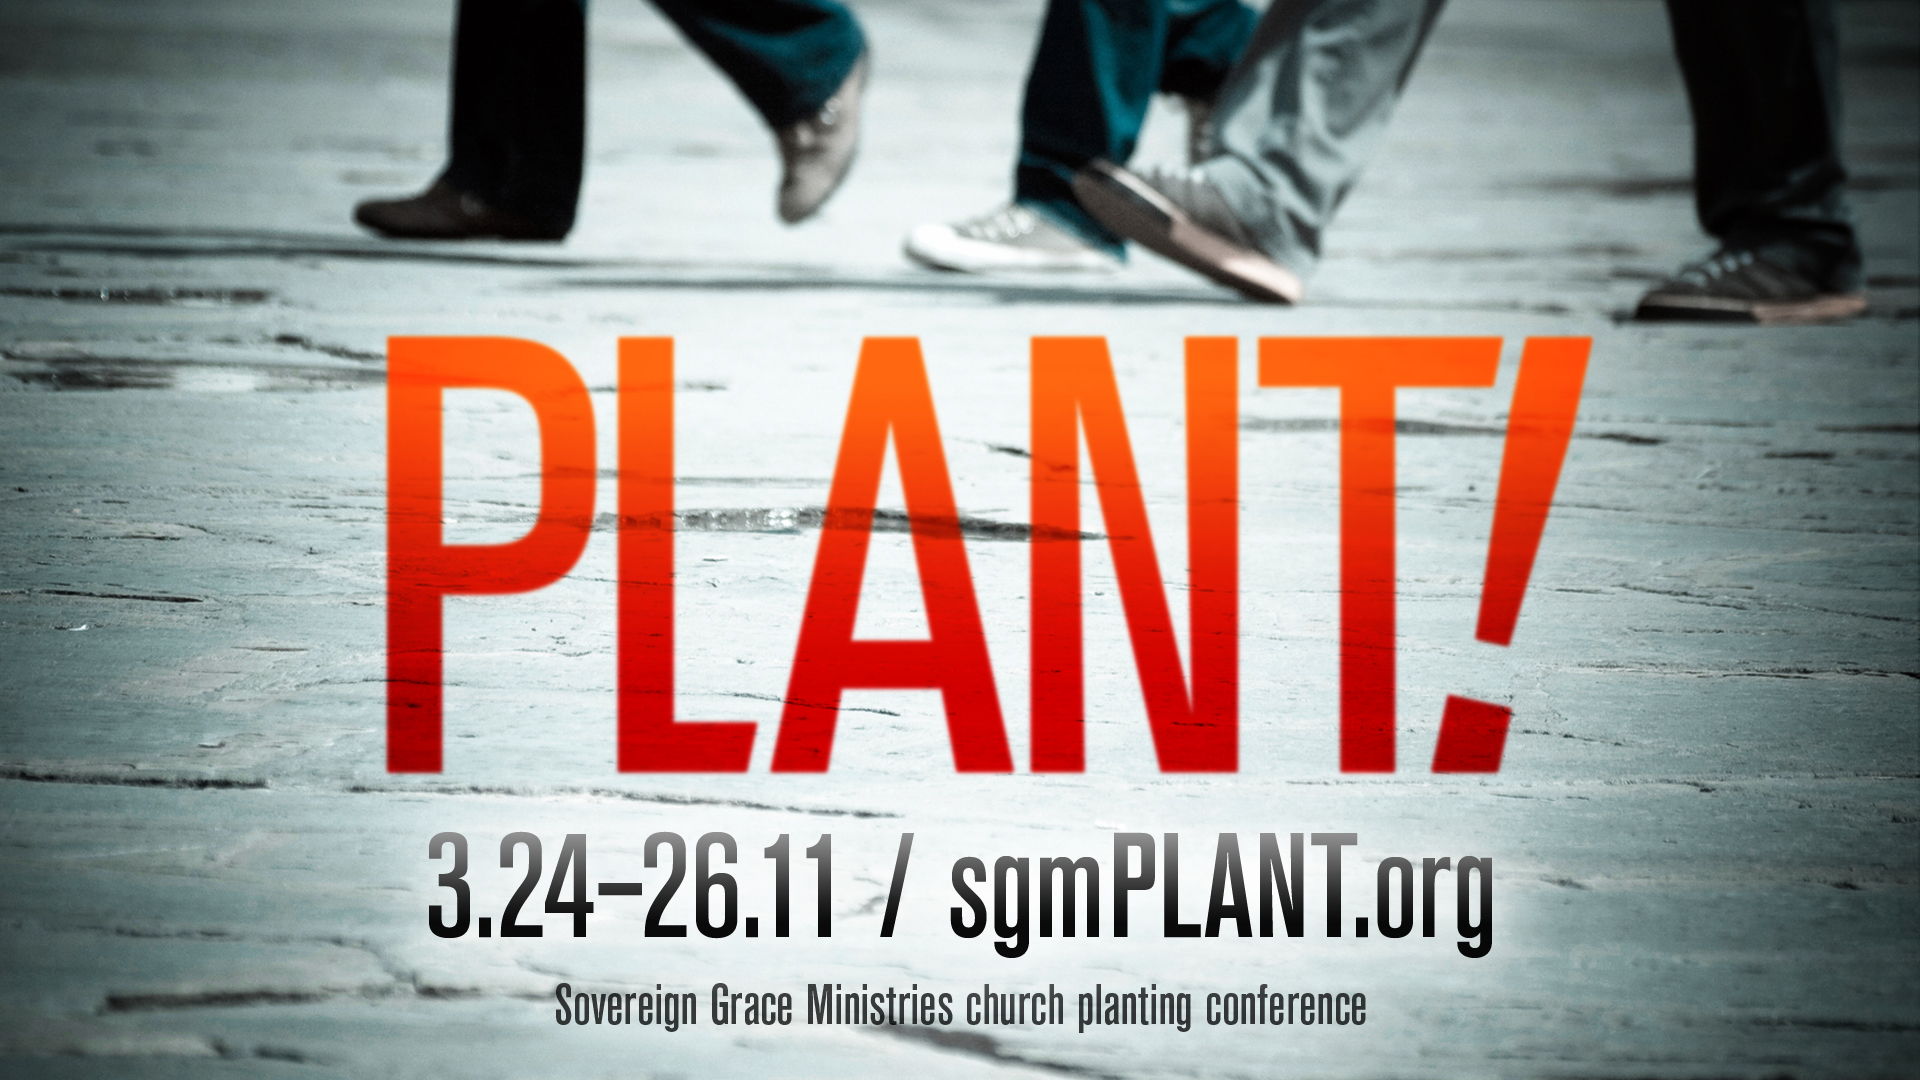 Plant_promo_screen final, web address